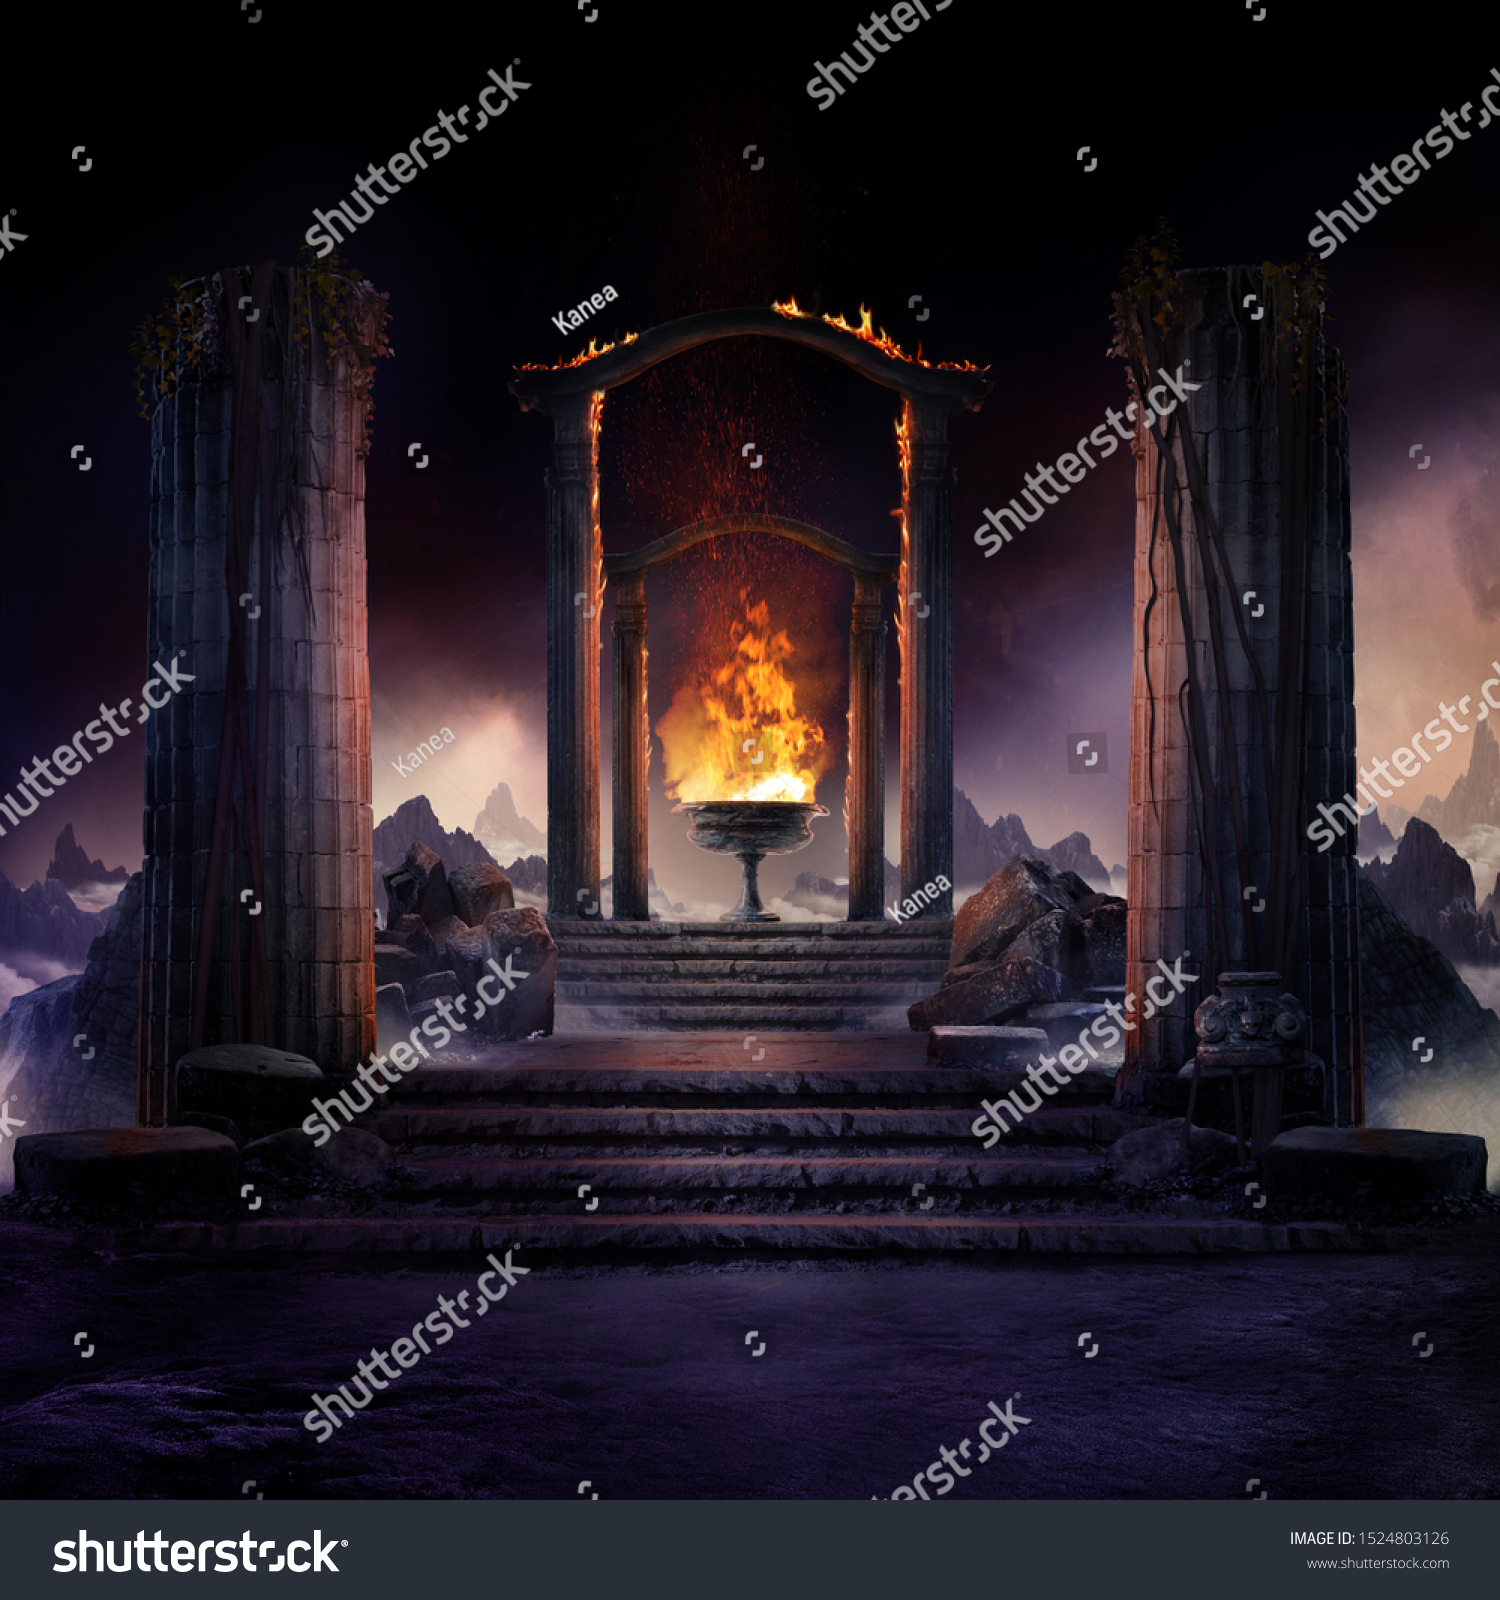 The eternal fire, dark atmospheric landscape with stairs to ancient columns and font of fire, fantasy background #1524803126